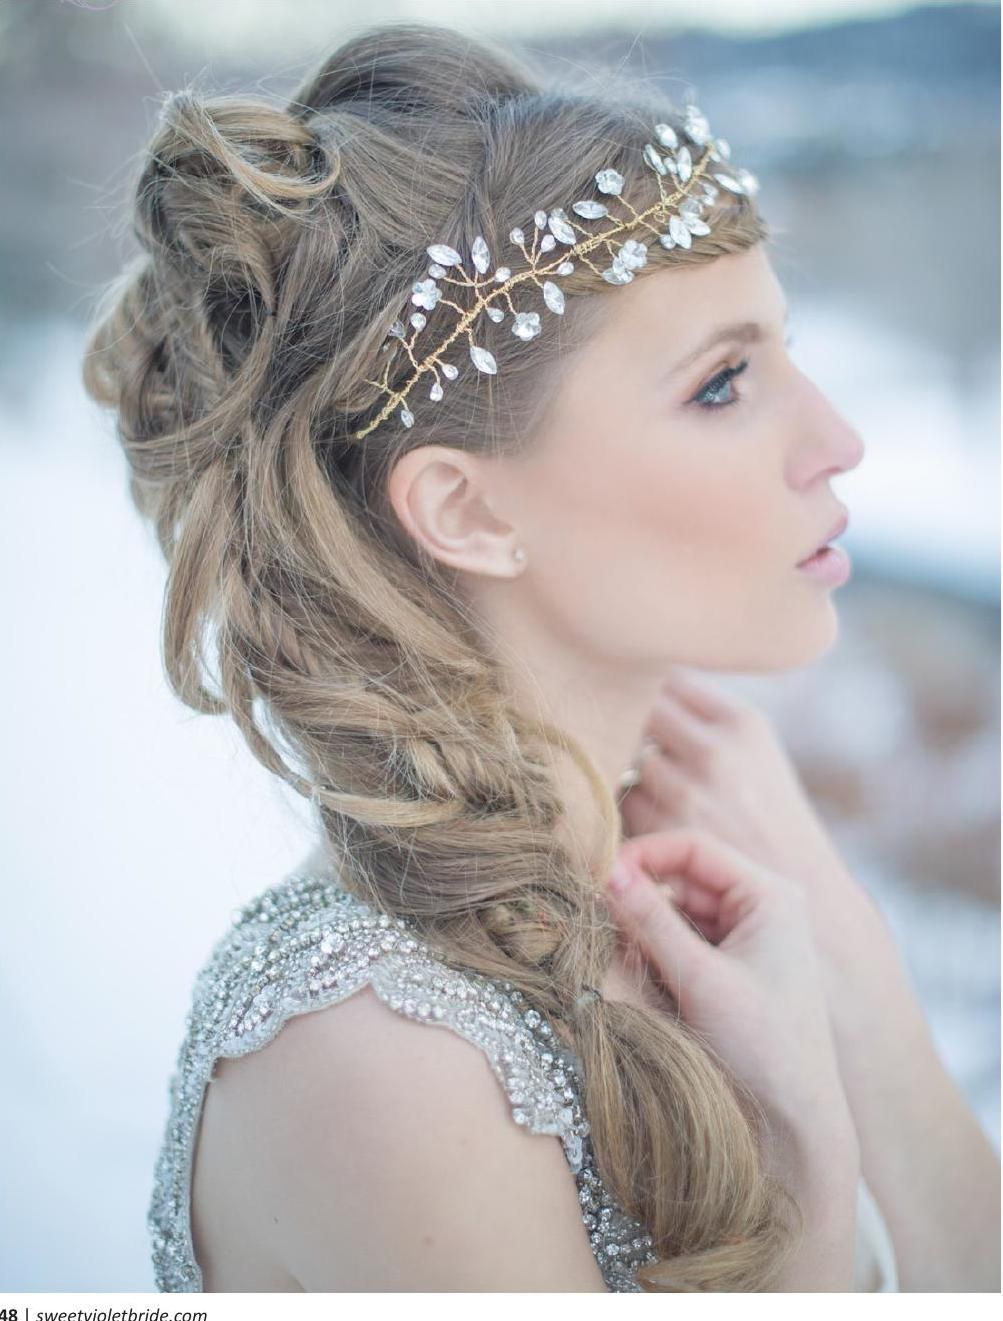 sweet violet bride issue 3 {winter / spring 2015} | violets, winter